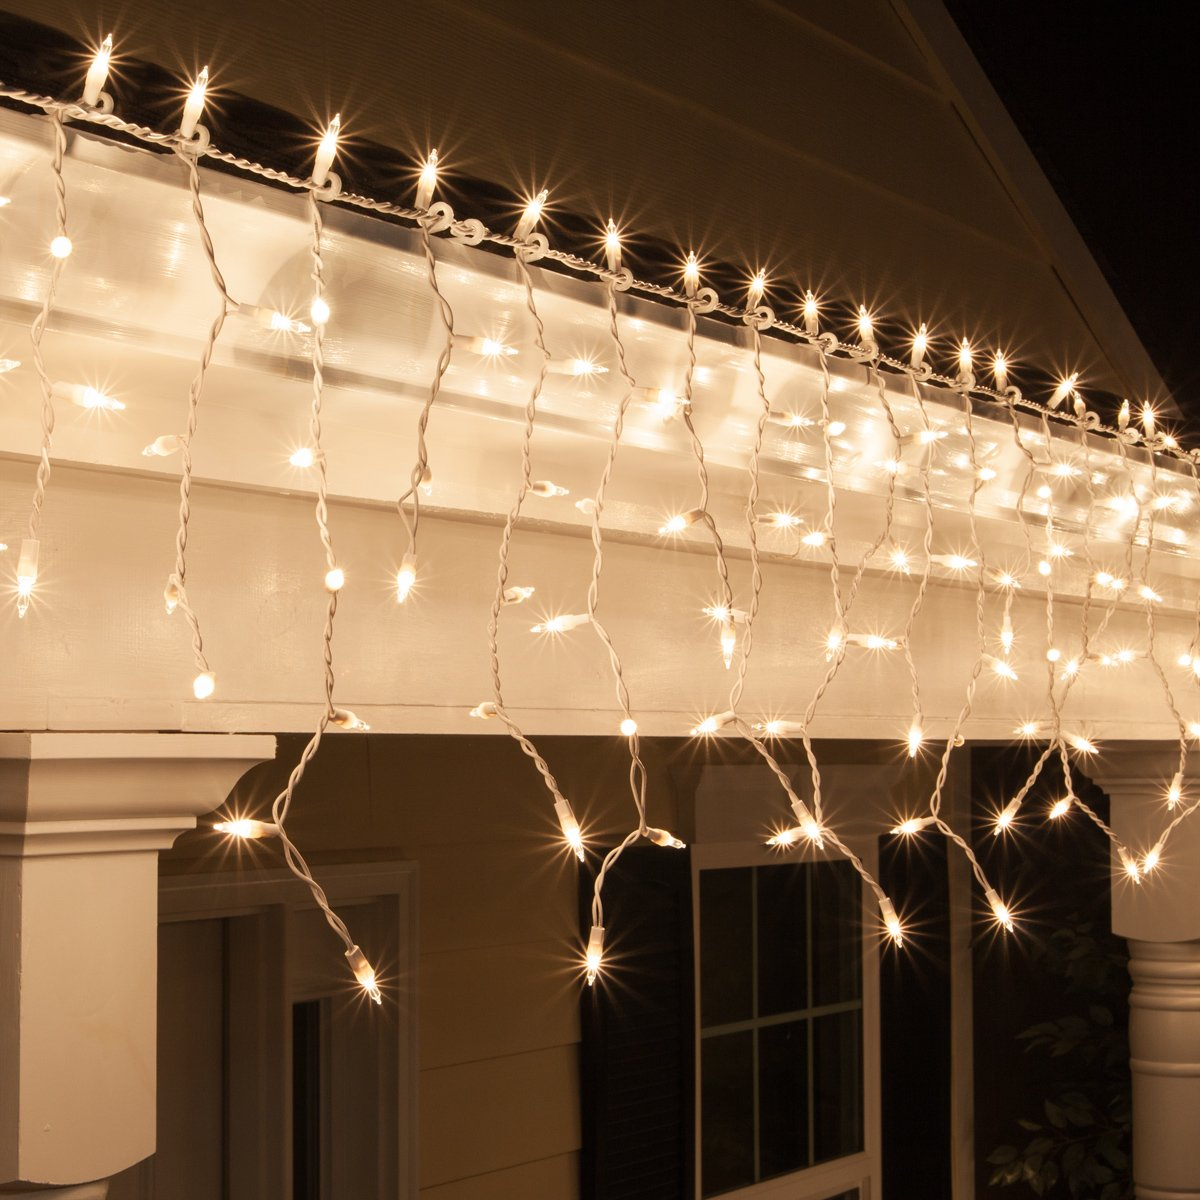 Amazon kringle traditions 9 ft 150 clear icicle lights with amazon kringle traditions 9 ft 150 clear icicle lights with long drops white wire indooroutdoor christmas lights outdoor holiday icicle lights aloadofball Gallery